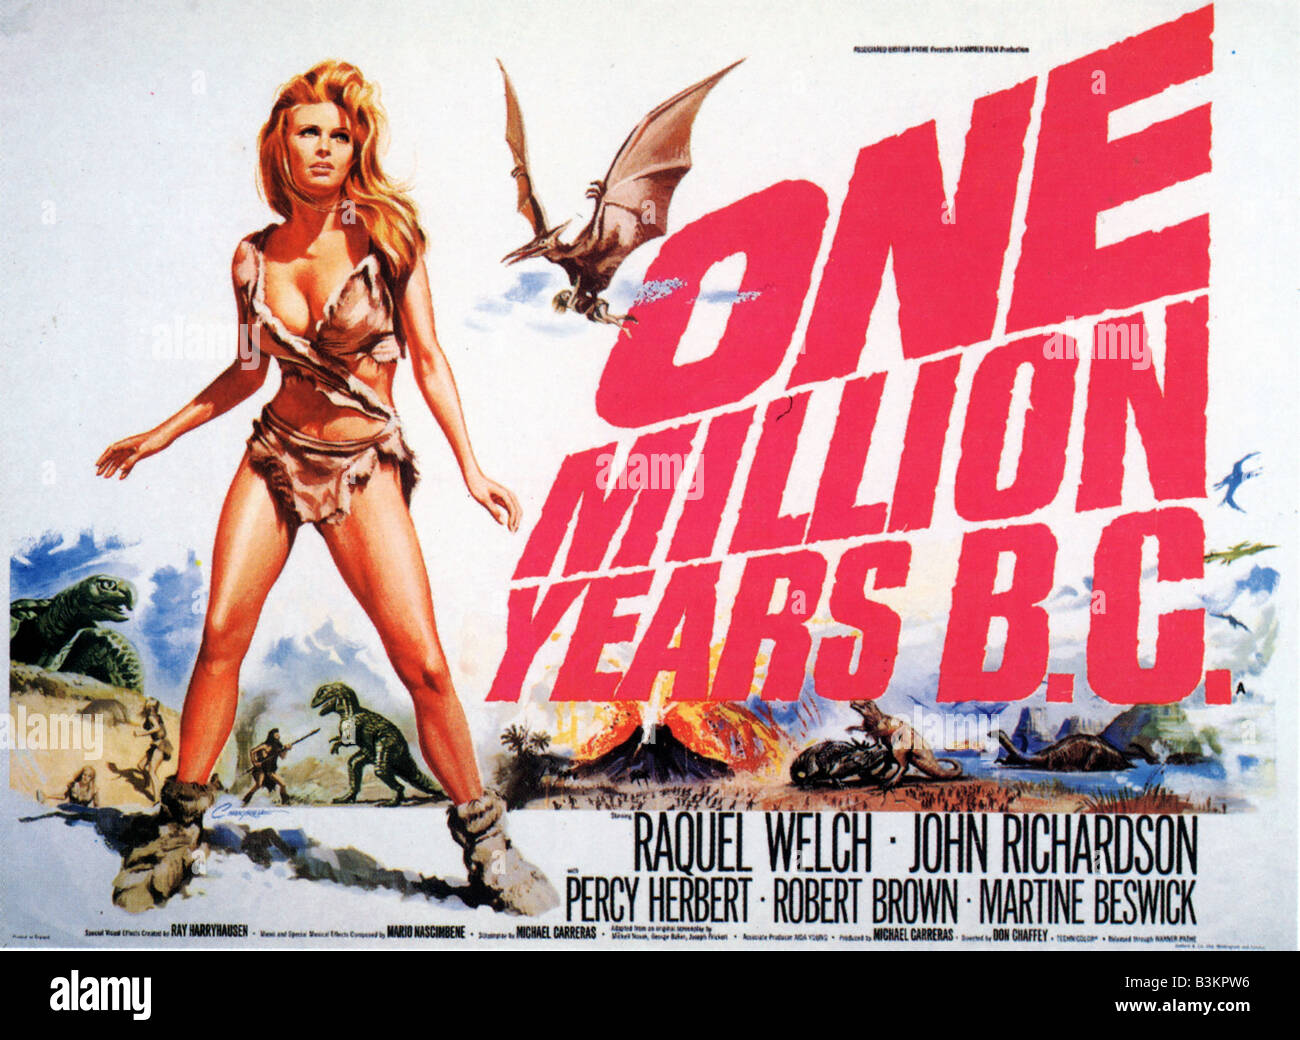 ONE MILLION YEARS BC Poster for 1966 Hammer film with Raquel Welch - Stock Image